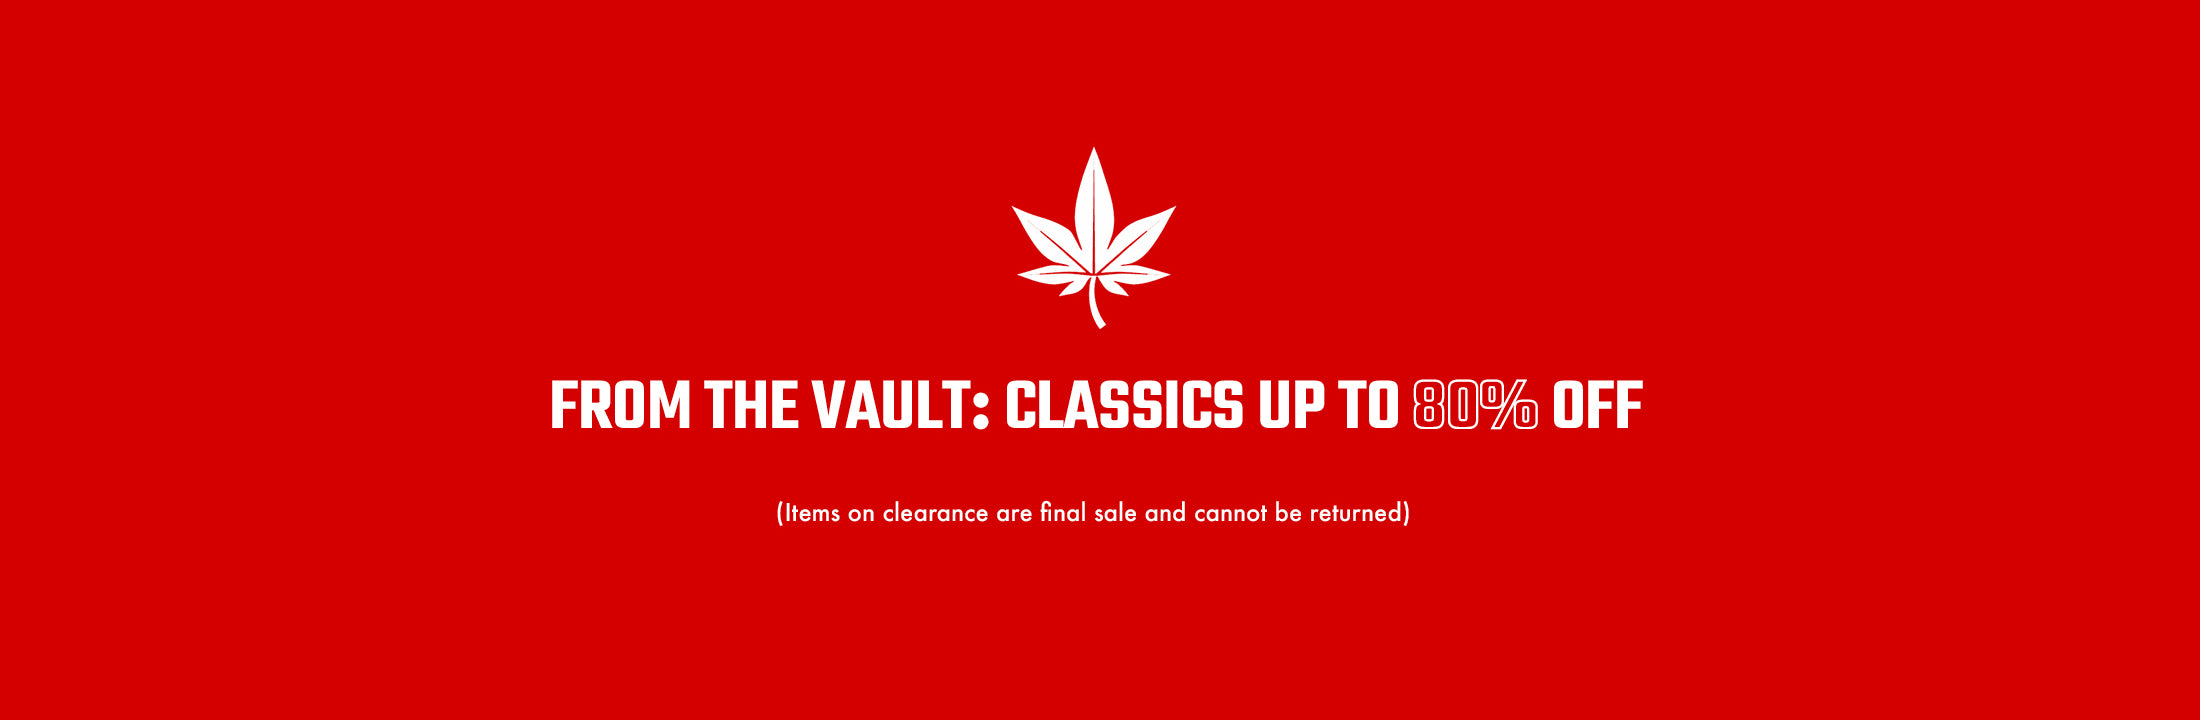 Classics Up to 80% Off